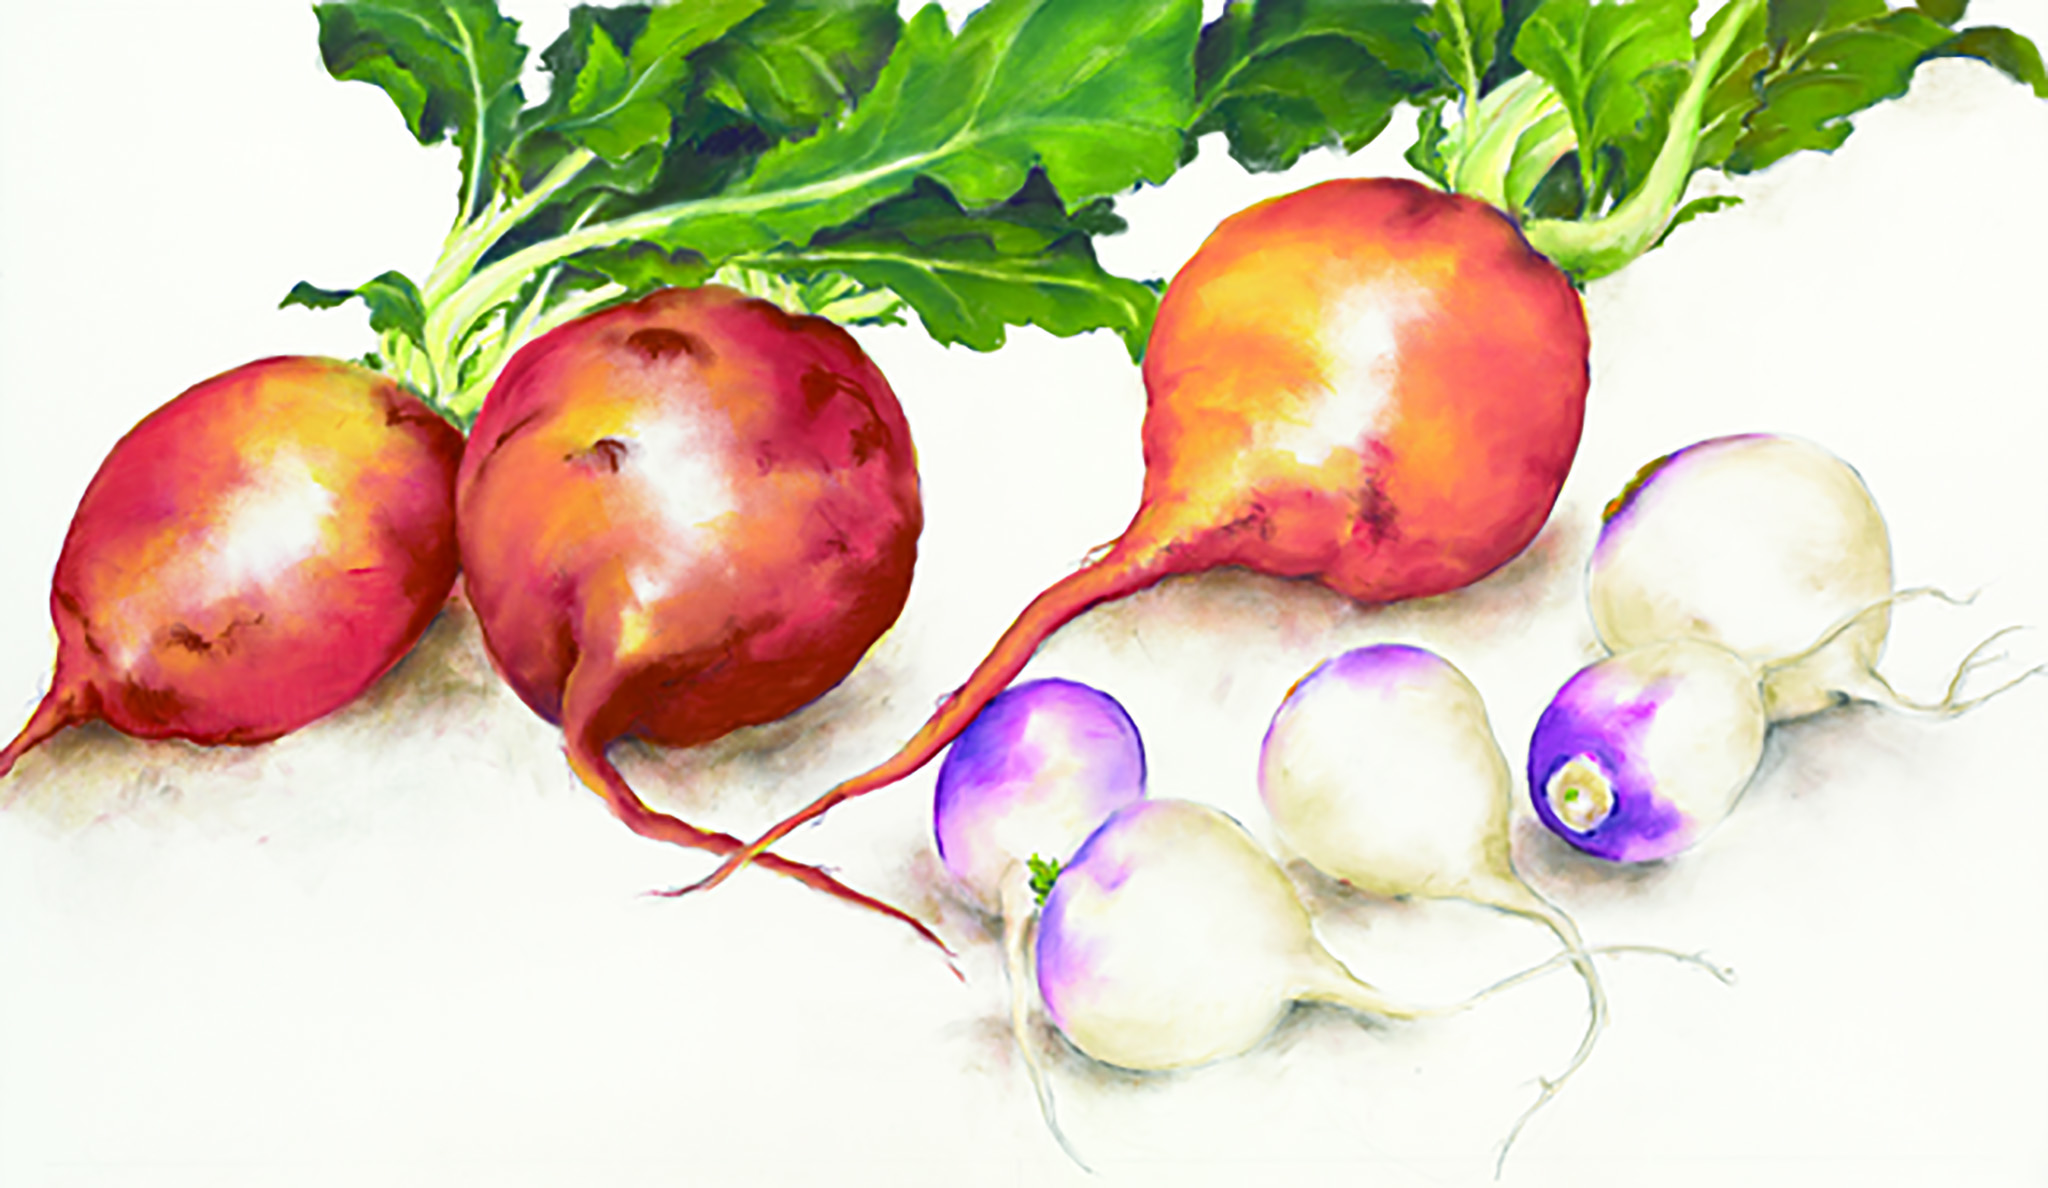 Gold Beet and Baby Turnip